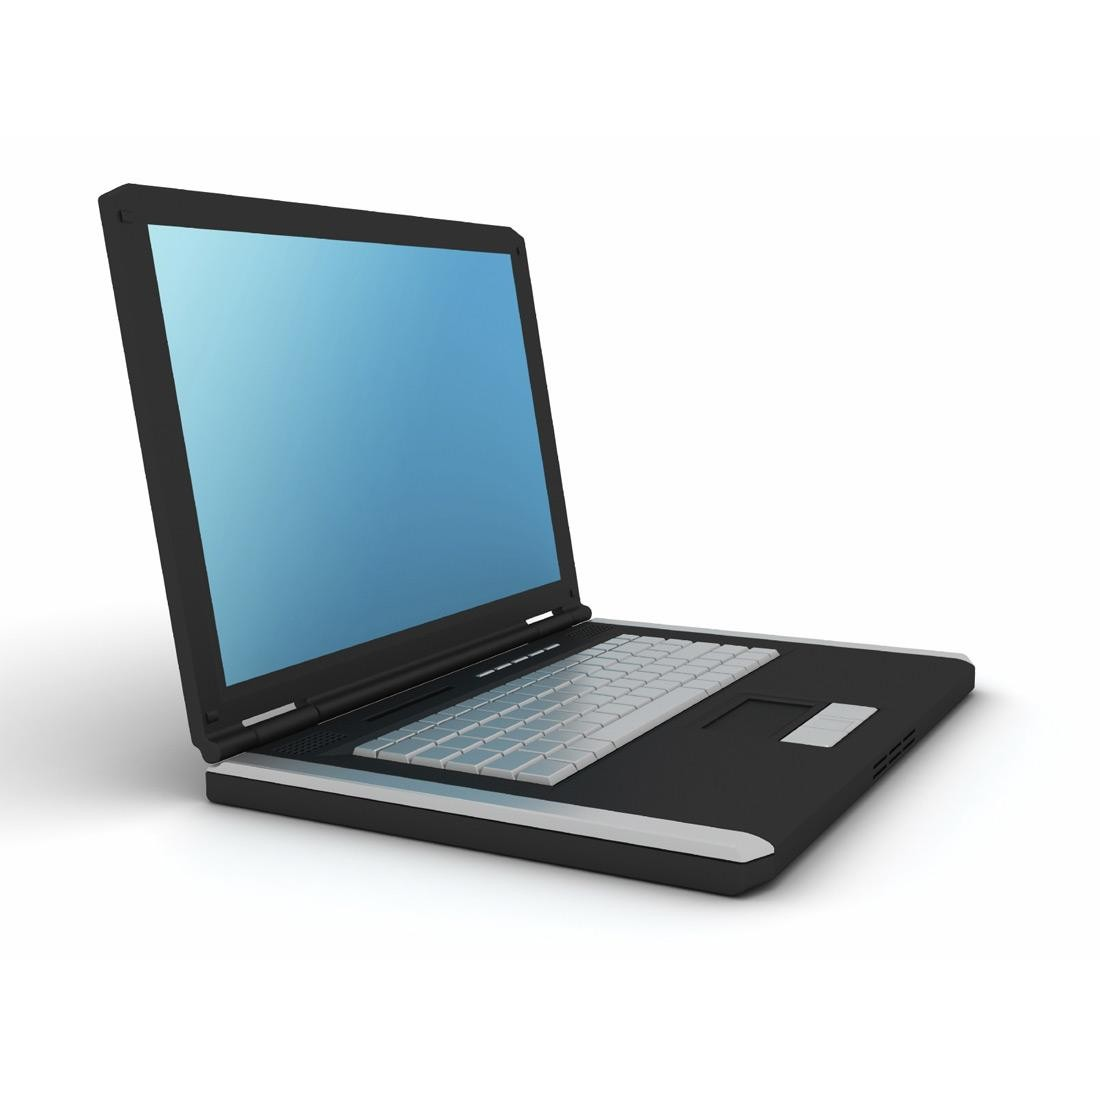 Acer Ferrari 3200 Notebook Computer PC